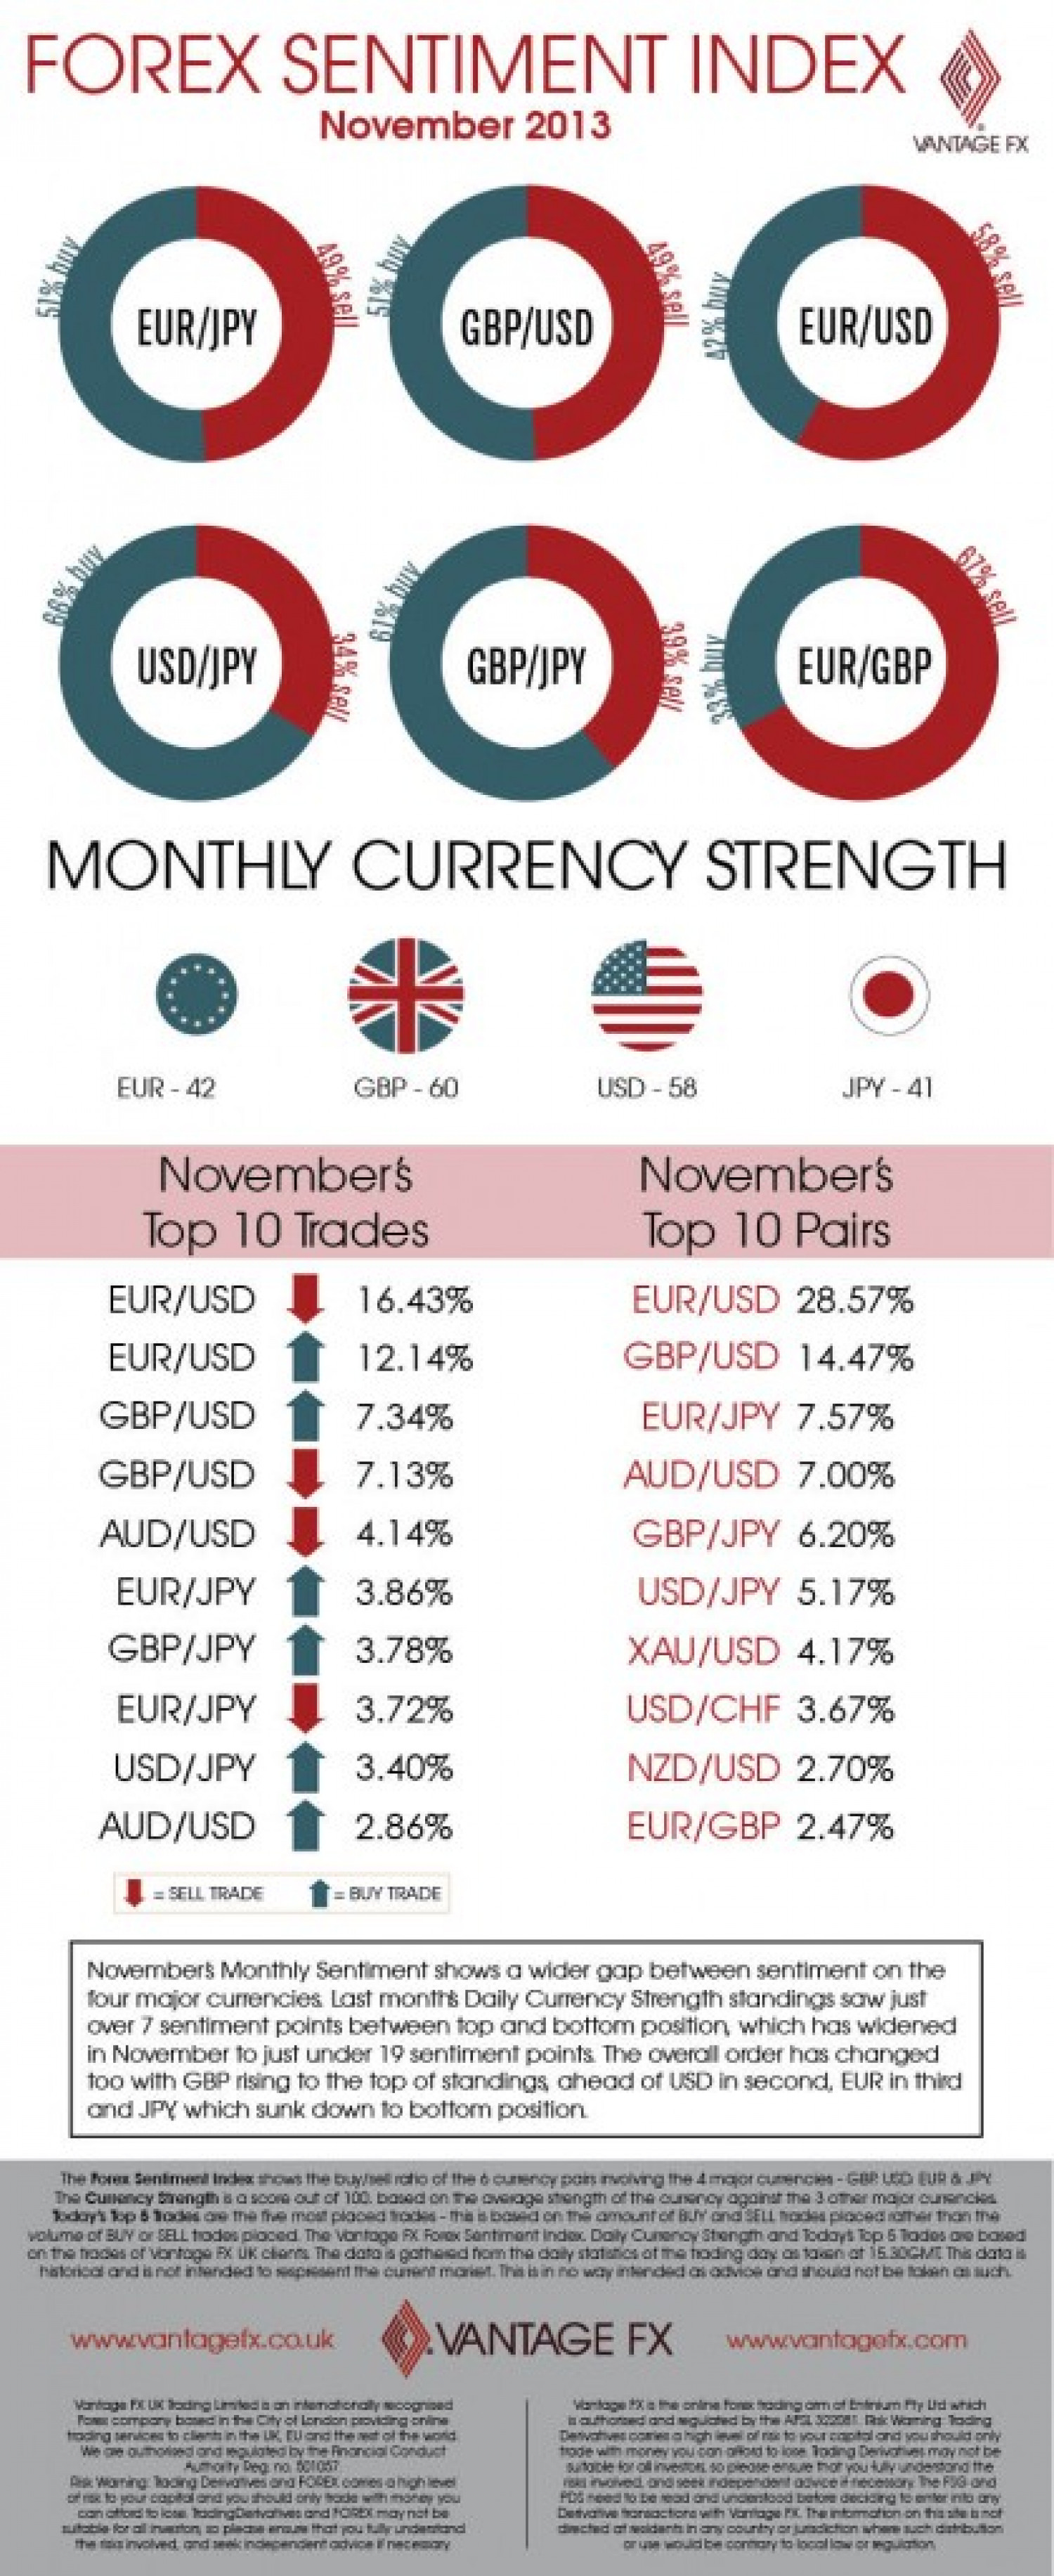 Forex sentiment chart